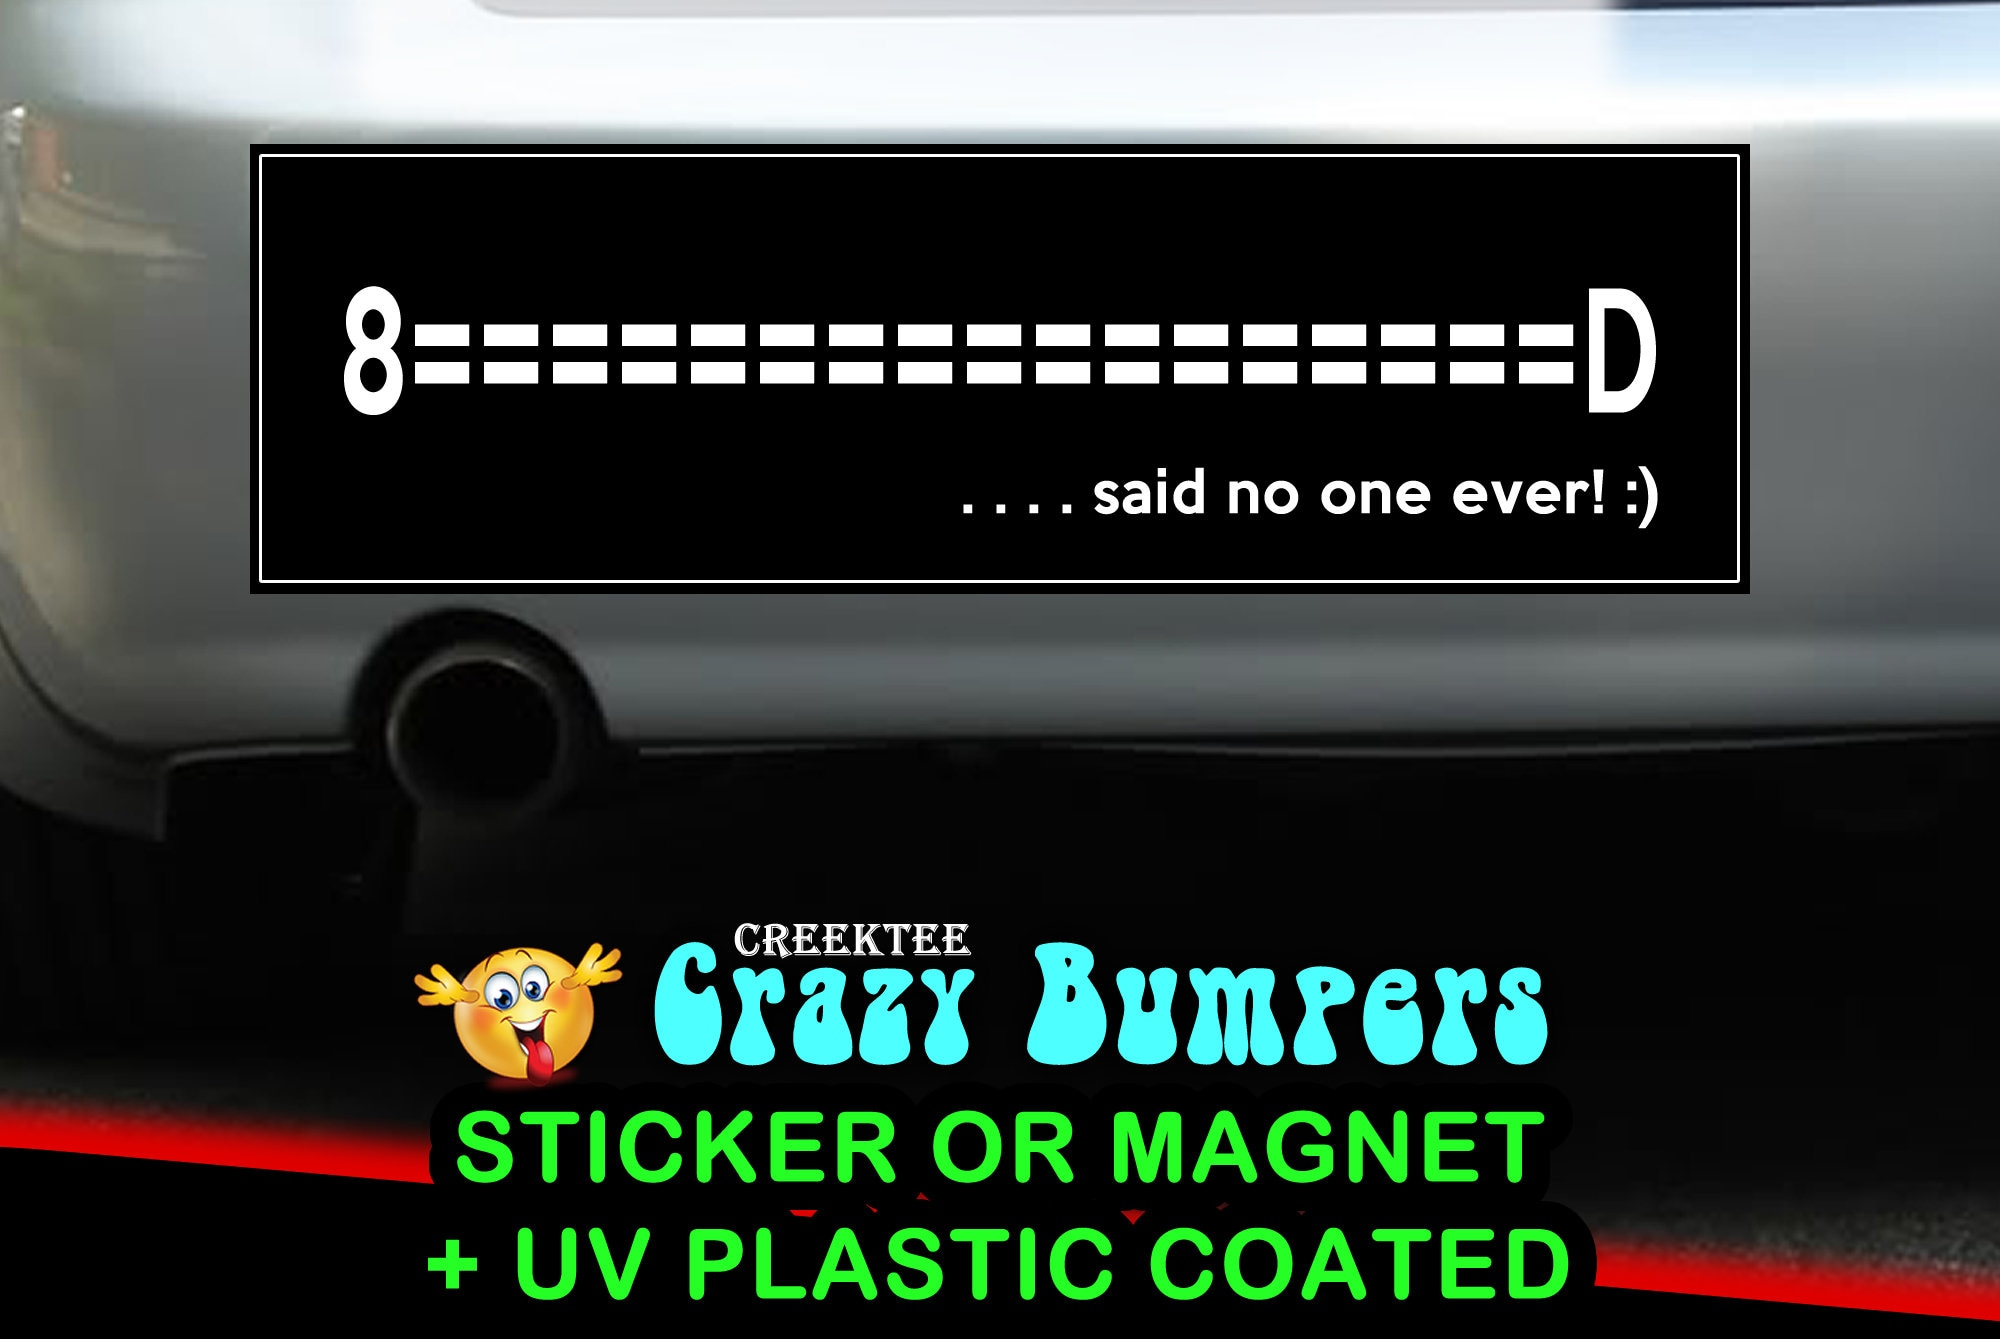 CAD$9.74 - 8====D  said no one ever 10 x 3 Bumper Sticker or Magnetic Bumper Sticker Available